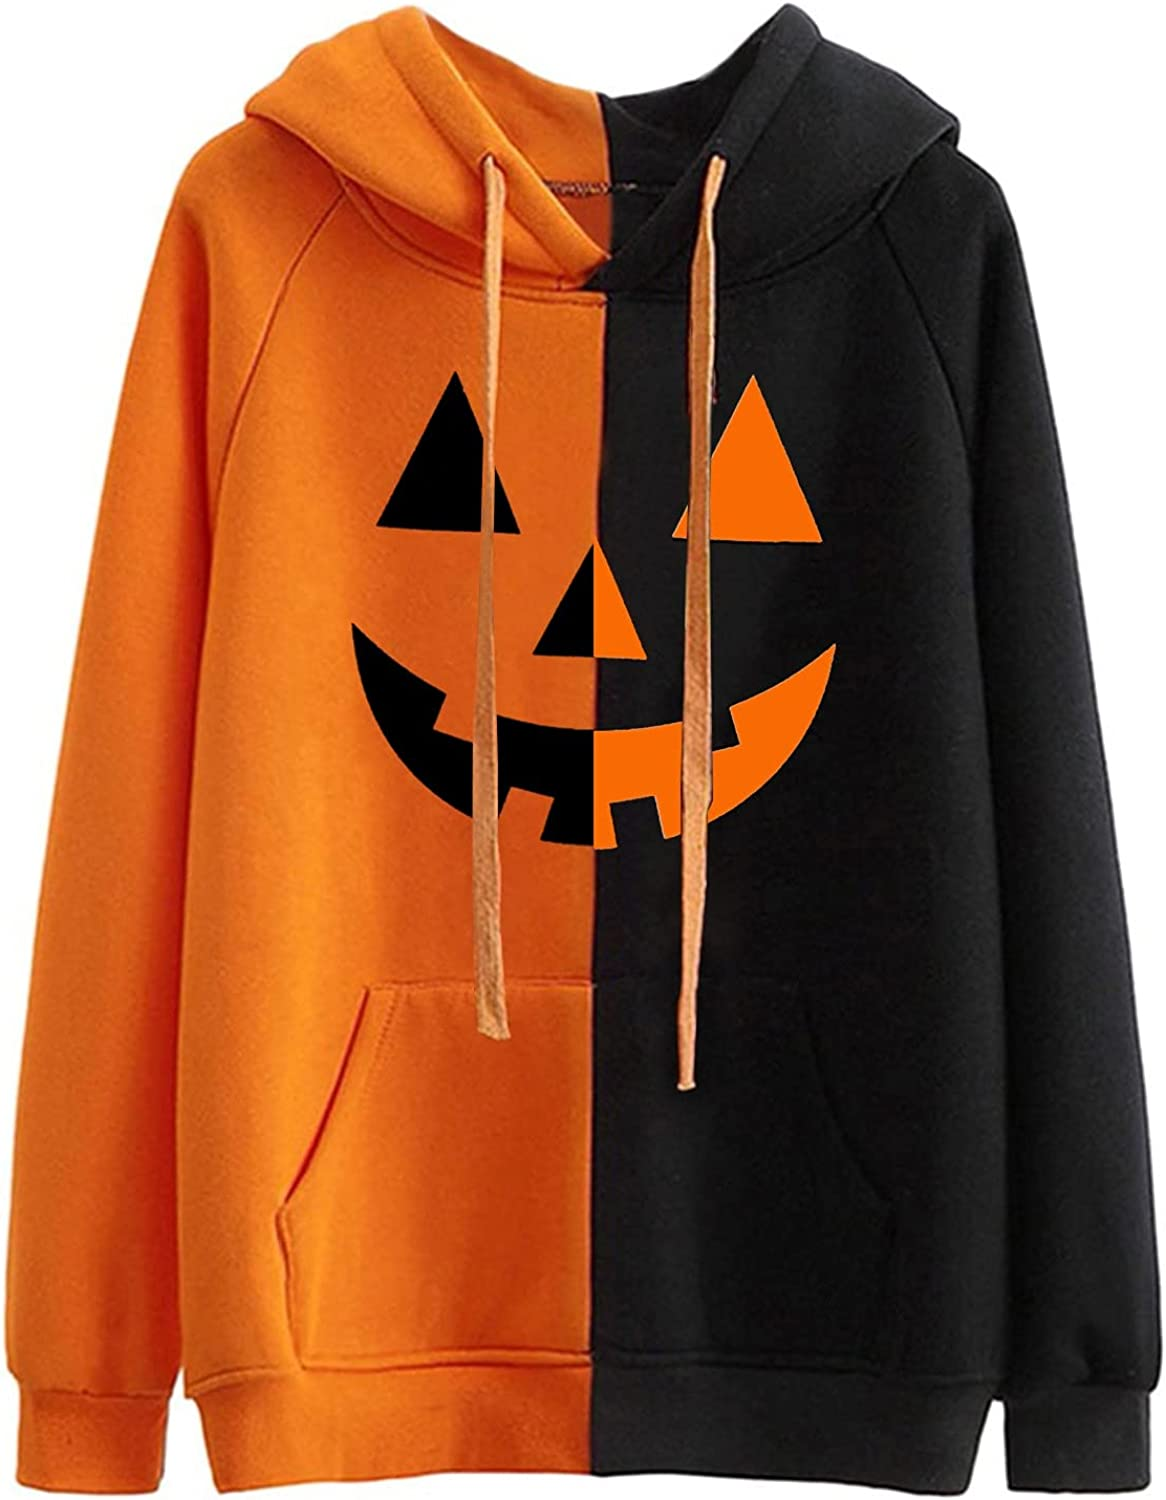 Complete Free Shipping POTO Sweatshirt National products for Women Halloween Pumpkin Graphic Hoodies Face